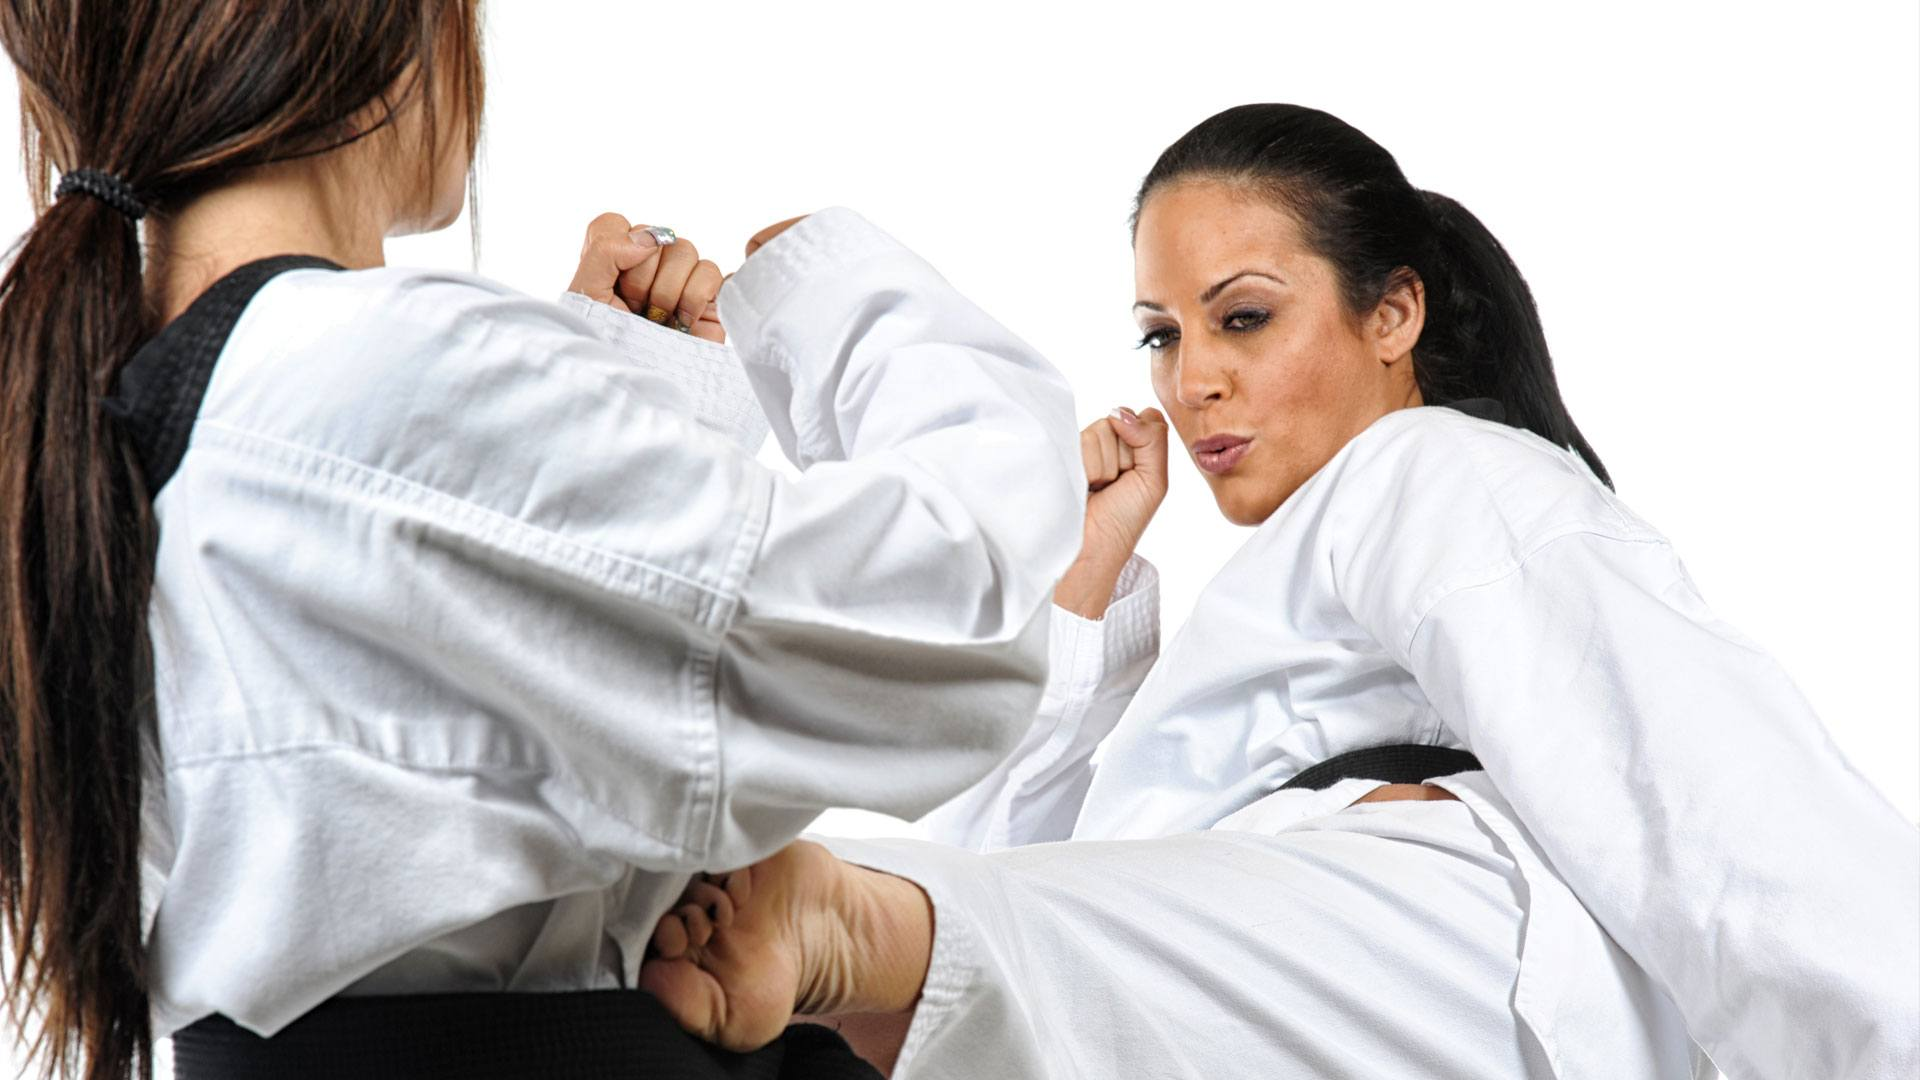 woman practicing martial arts moves